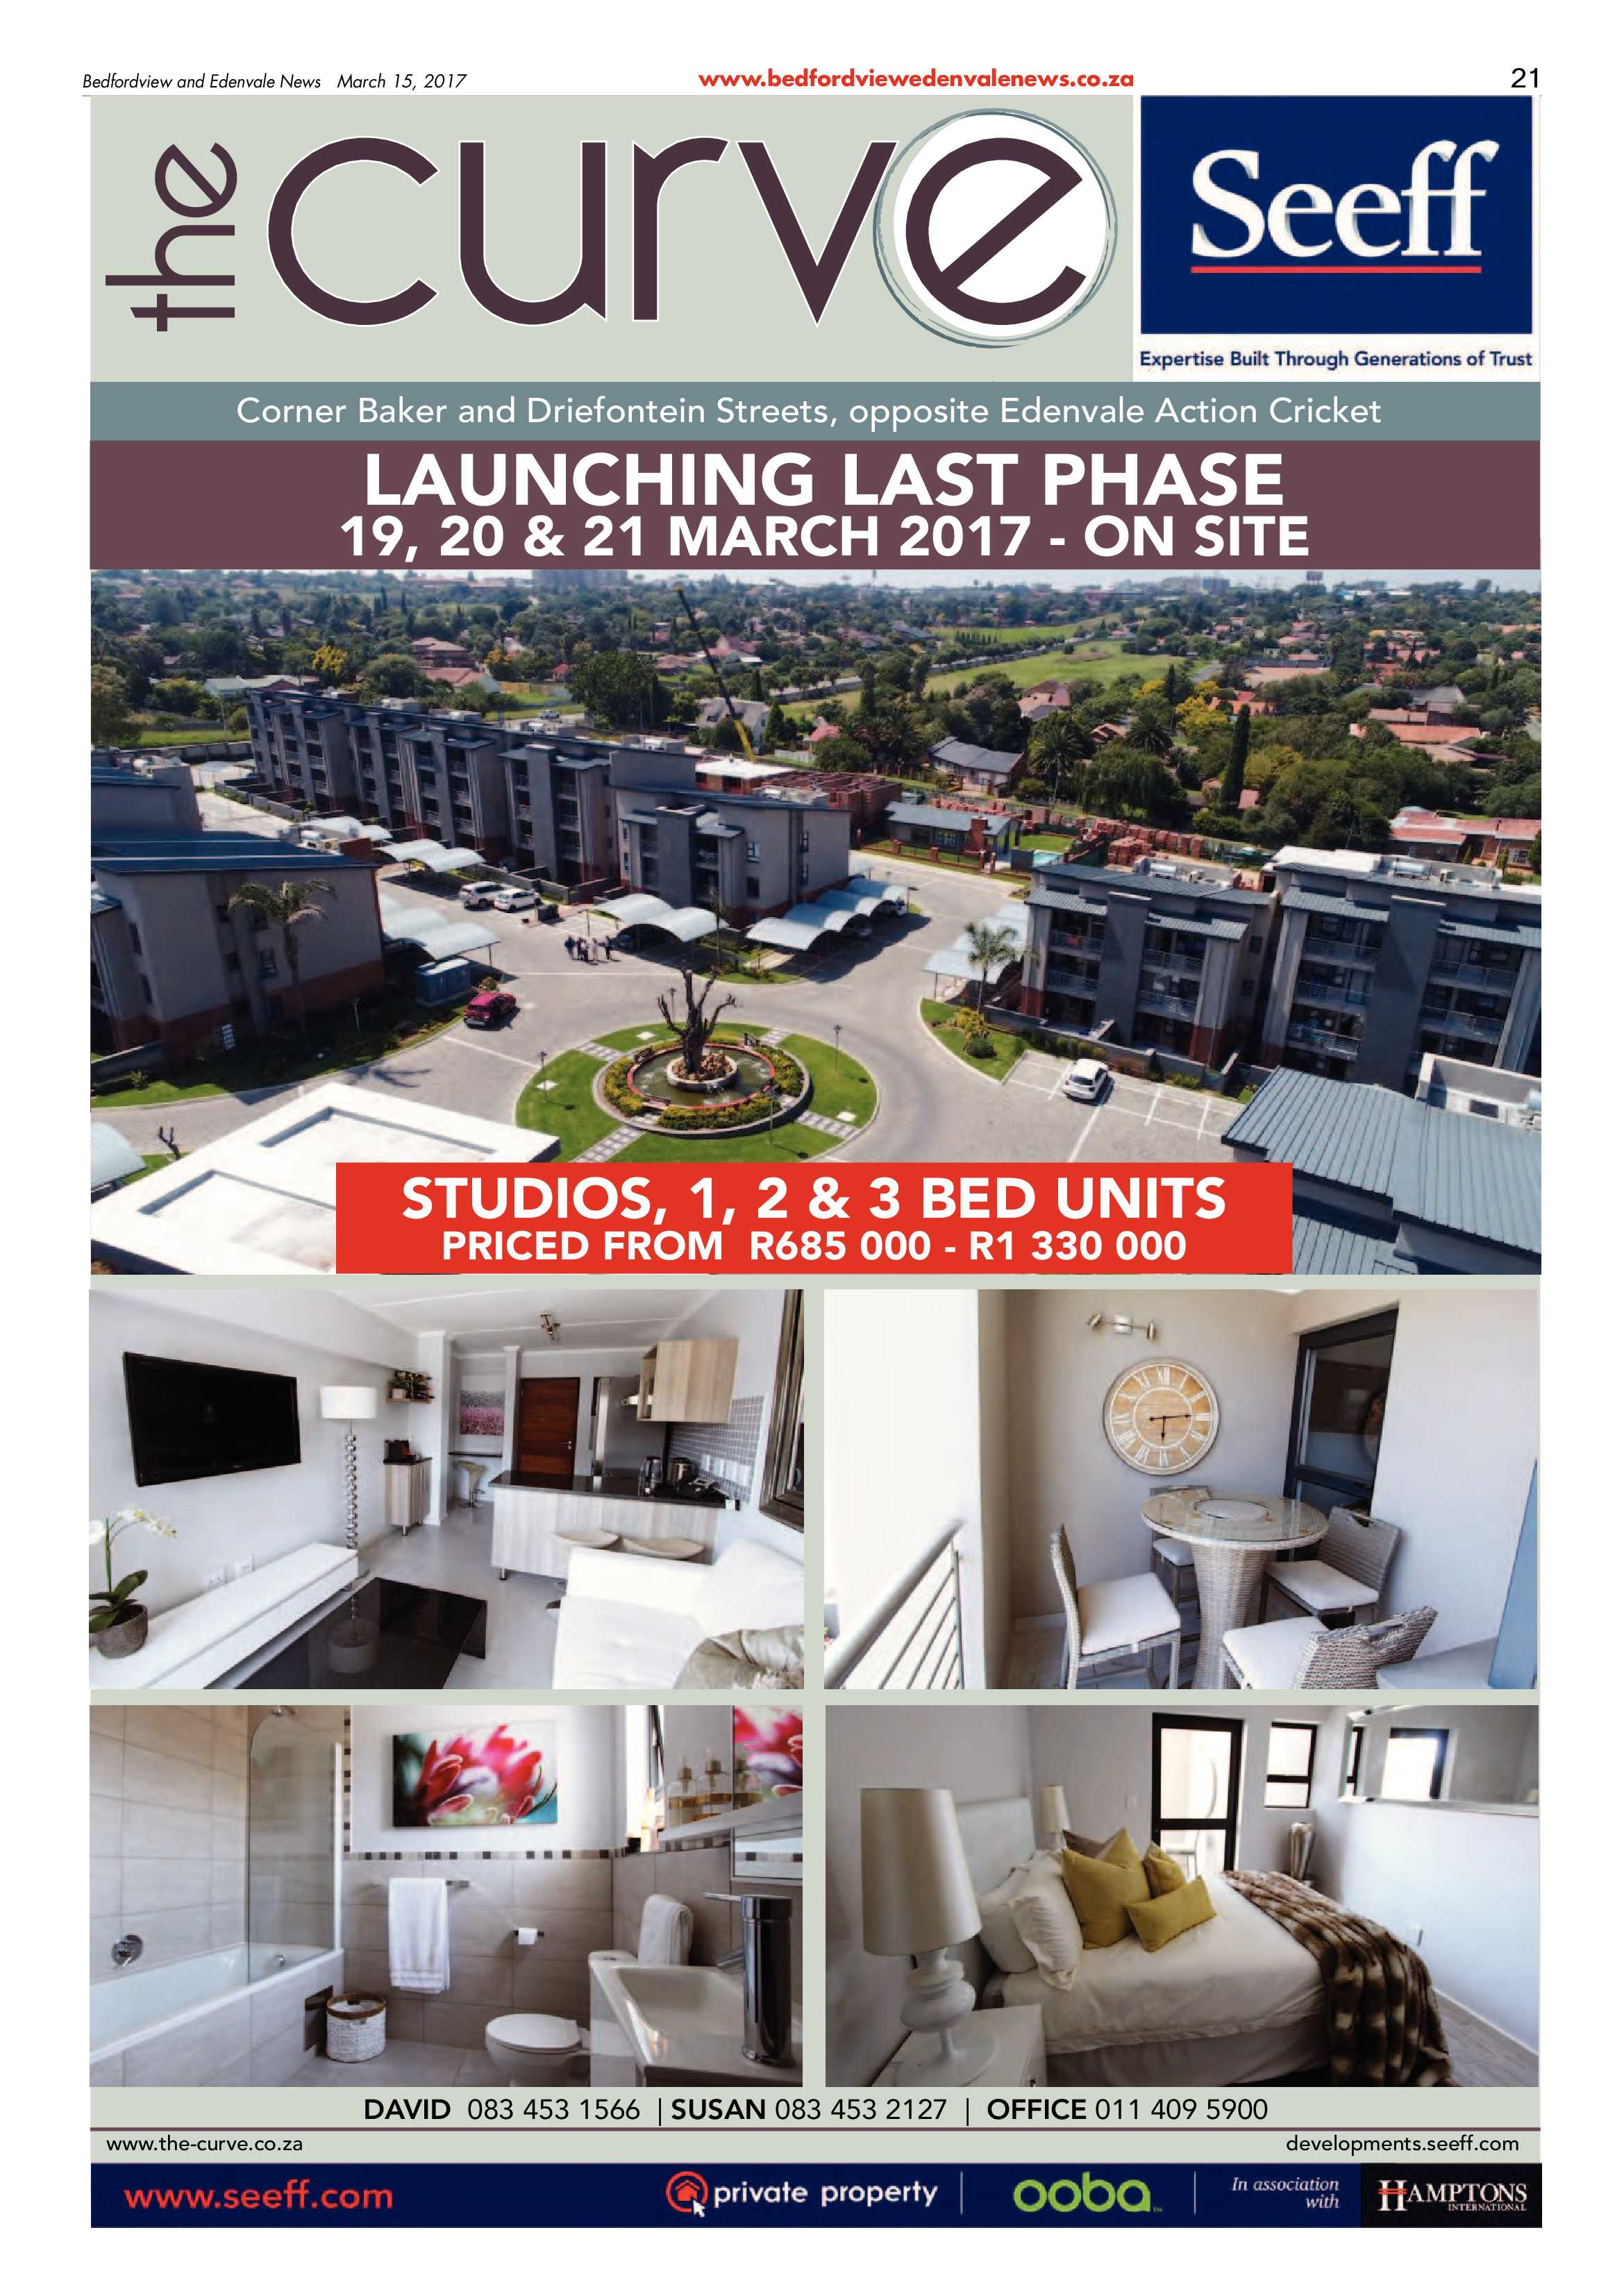 bedfordview-edenvale-news-15-march-2017-epapers-page-21